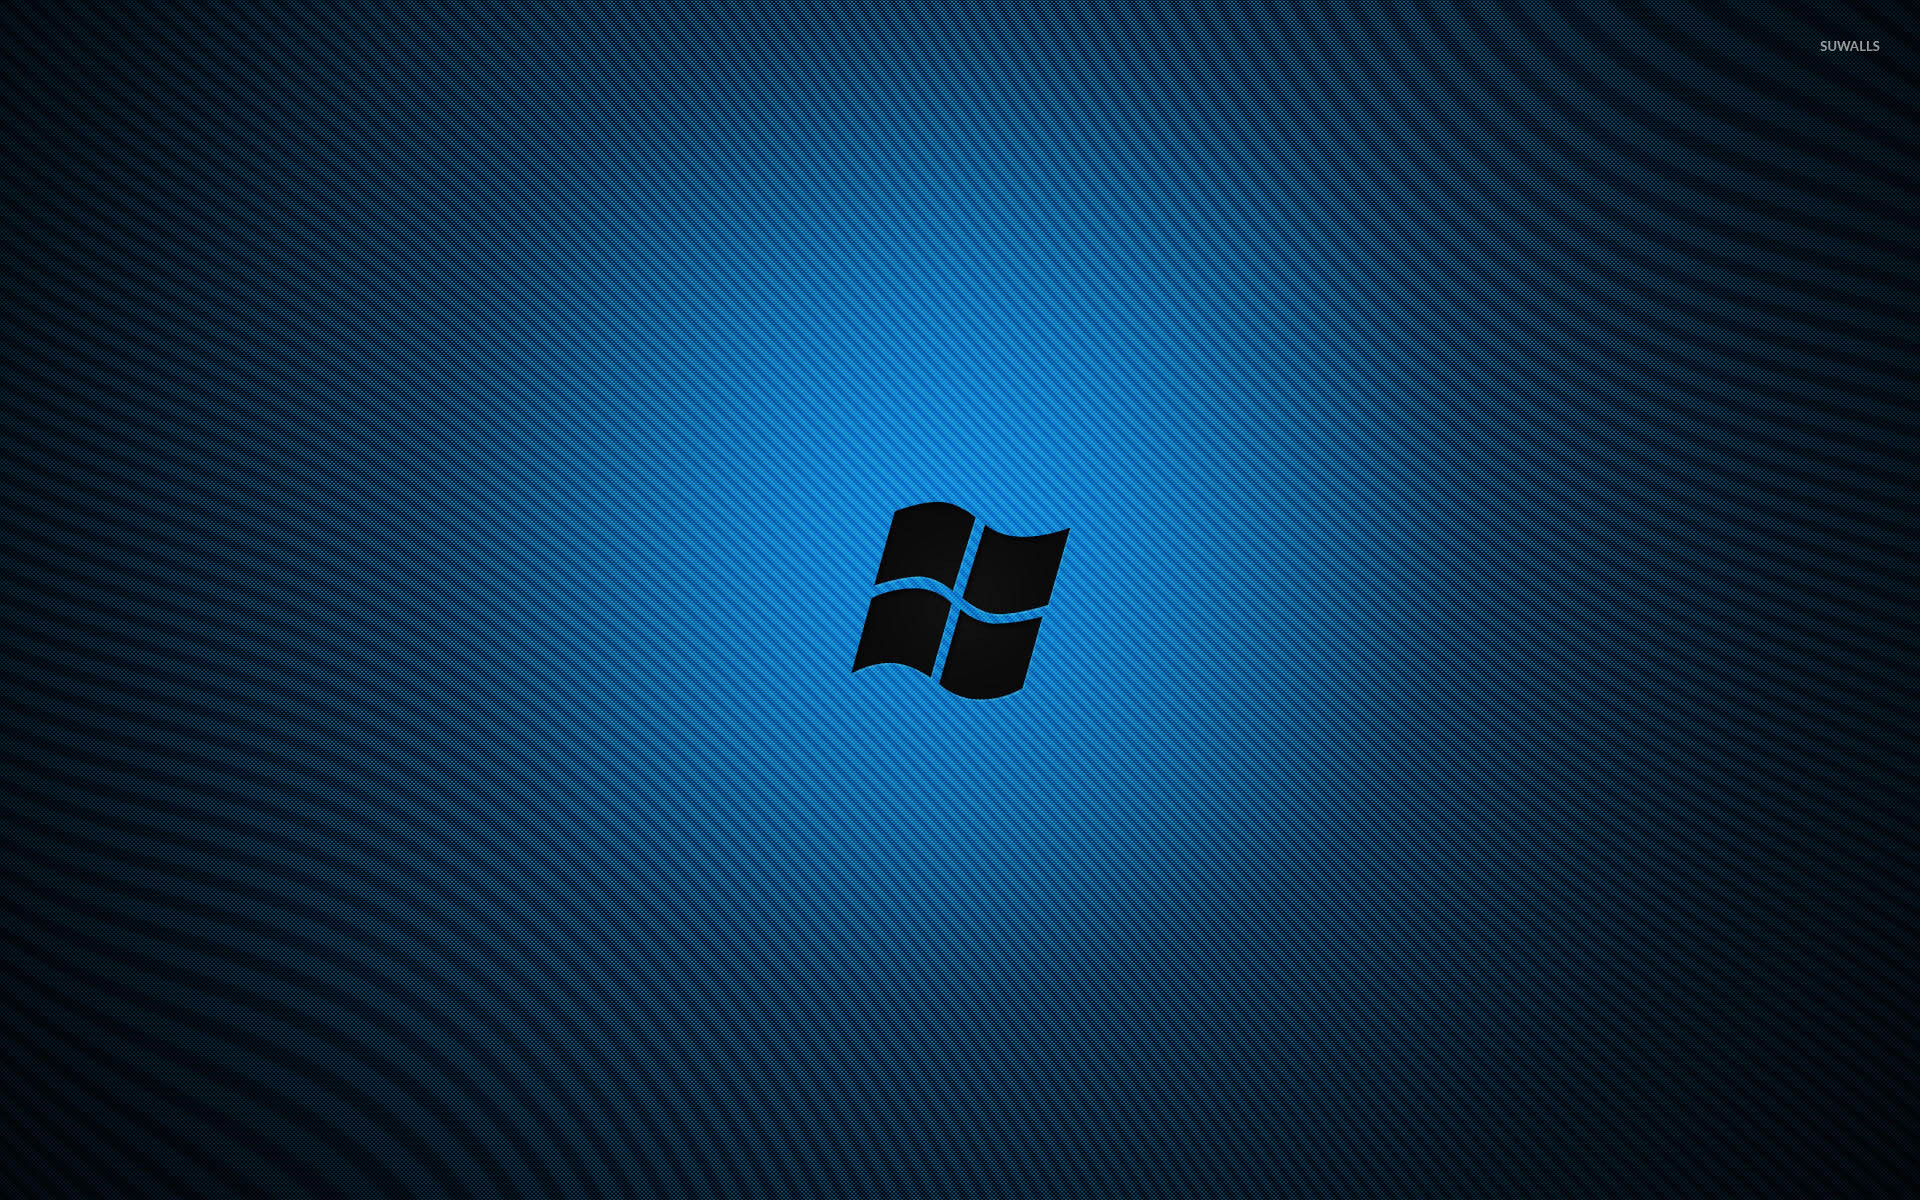 Black Windows Logo Wallpaper Computer Wallpapers 54242